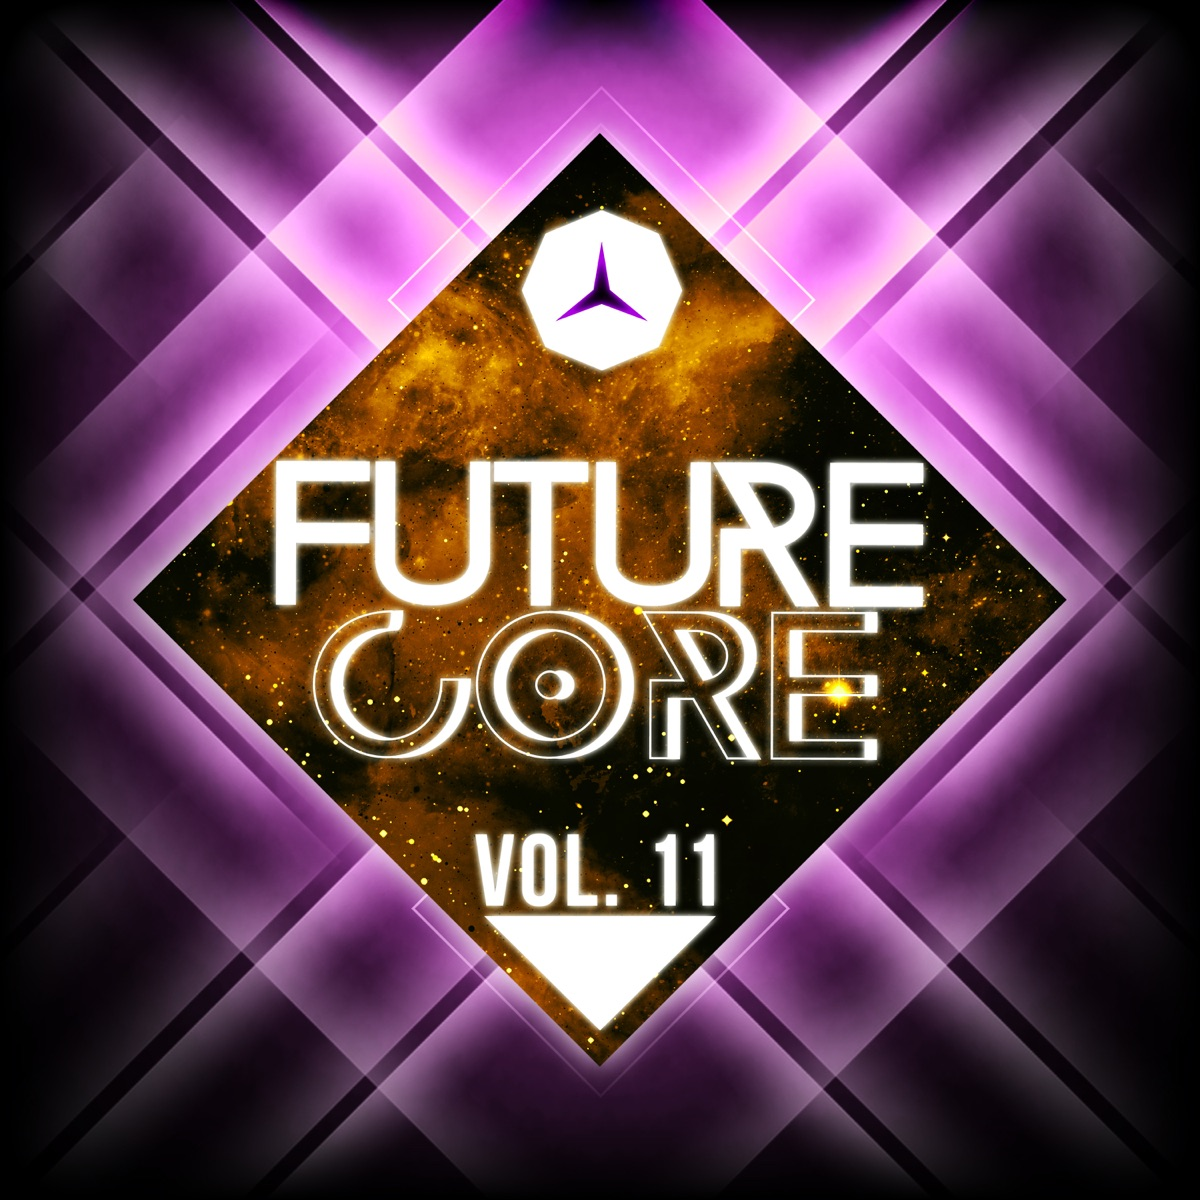 Future Core Vol 11 Various Artists CD cover